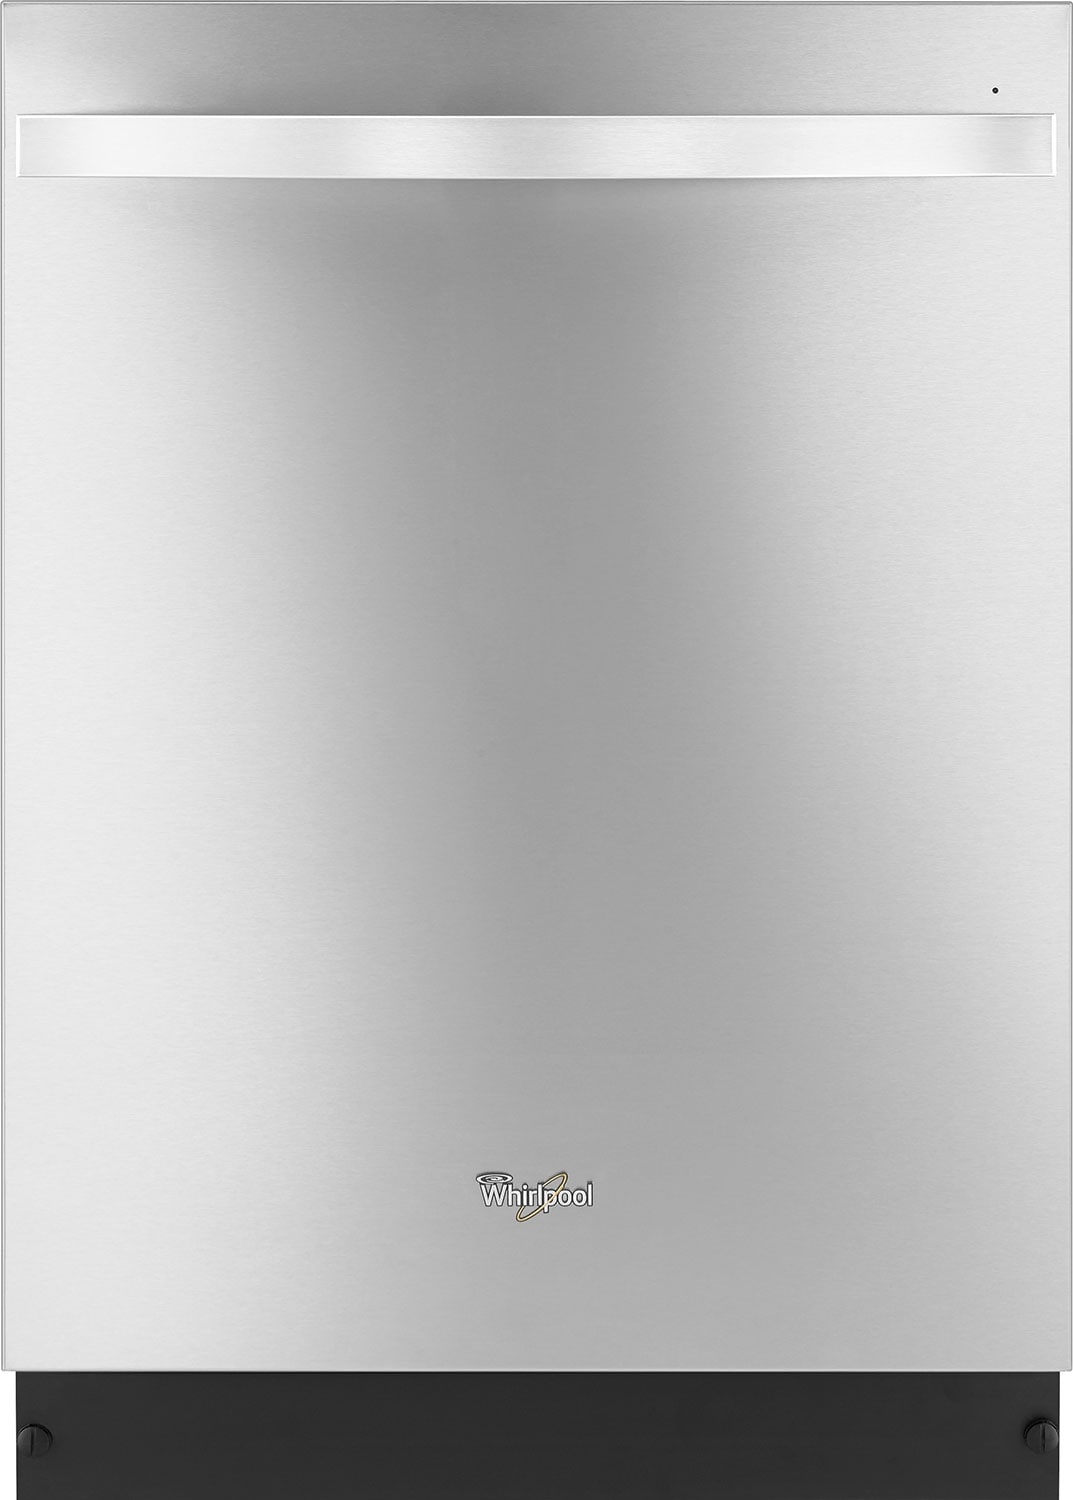 Whirlpool Gold® Built-In Dishwasher with TotalCoverage Spray Arm – Stainless Steel